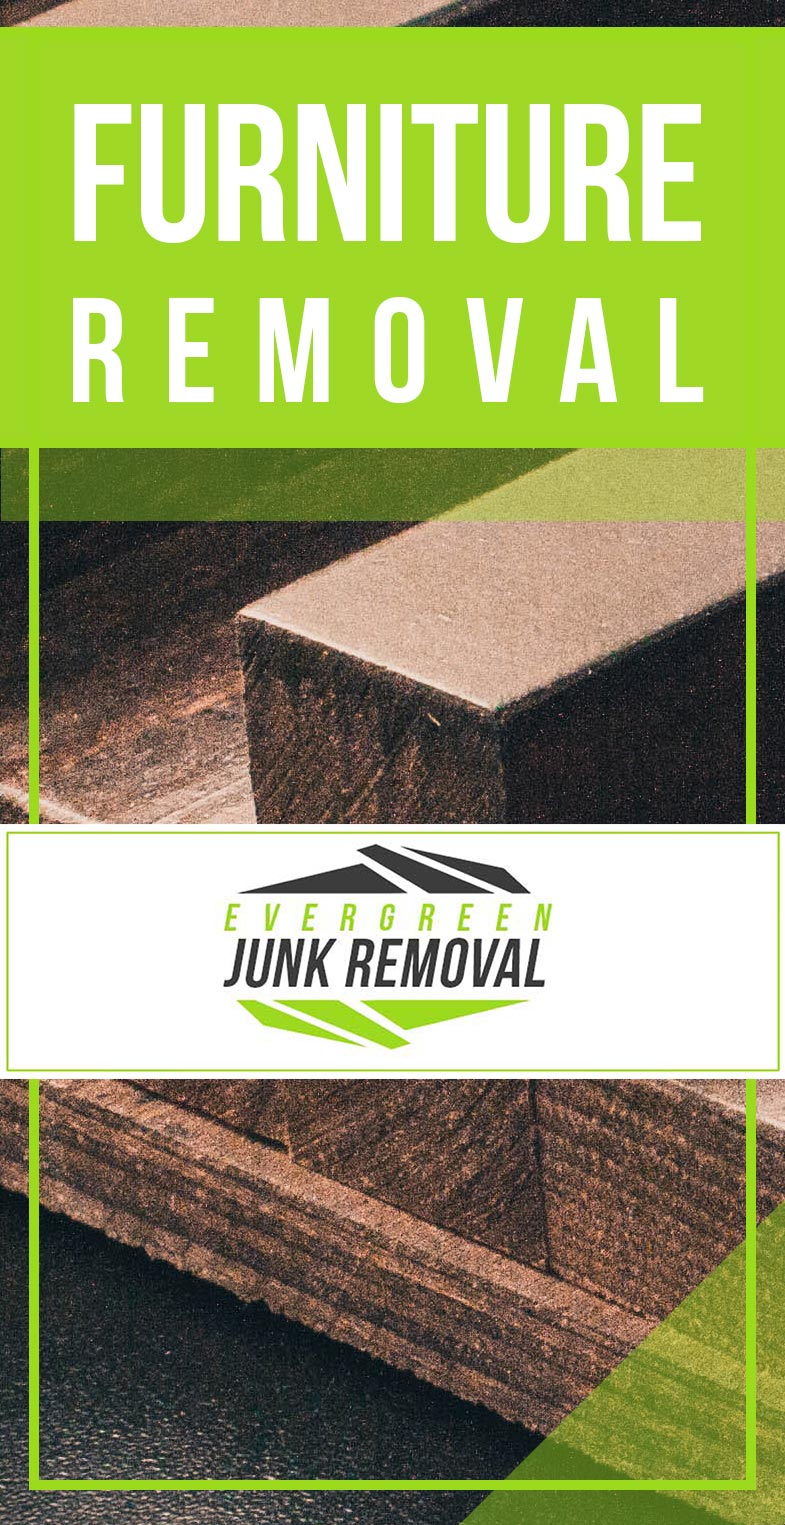 Junk Removal Glen Ridge Furniture Removal